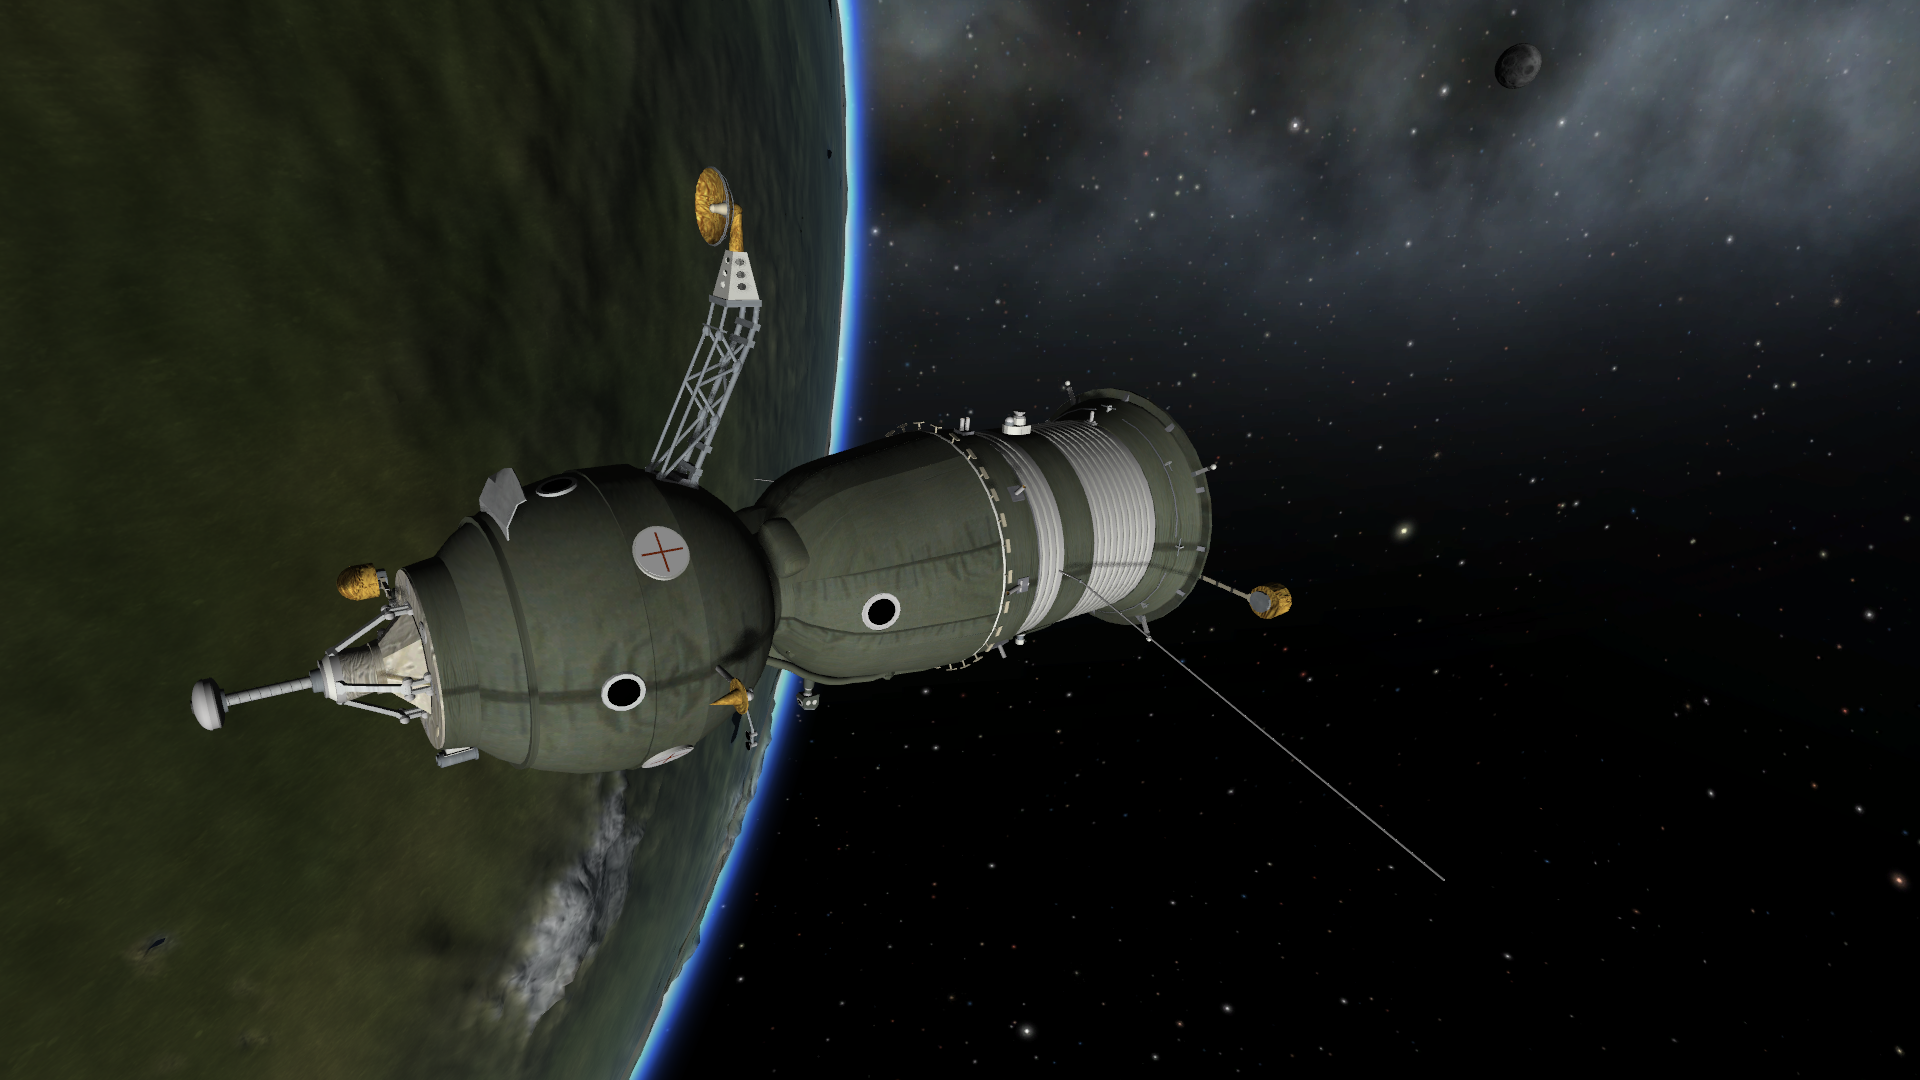 download kerbal space program 1.4.5